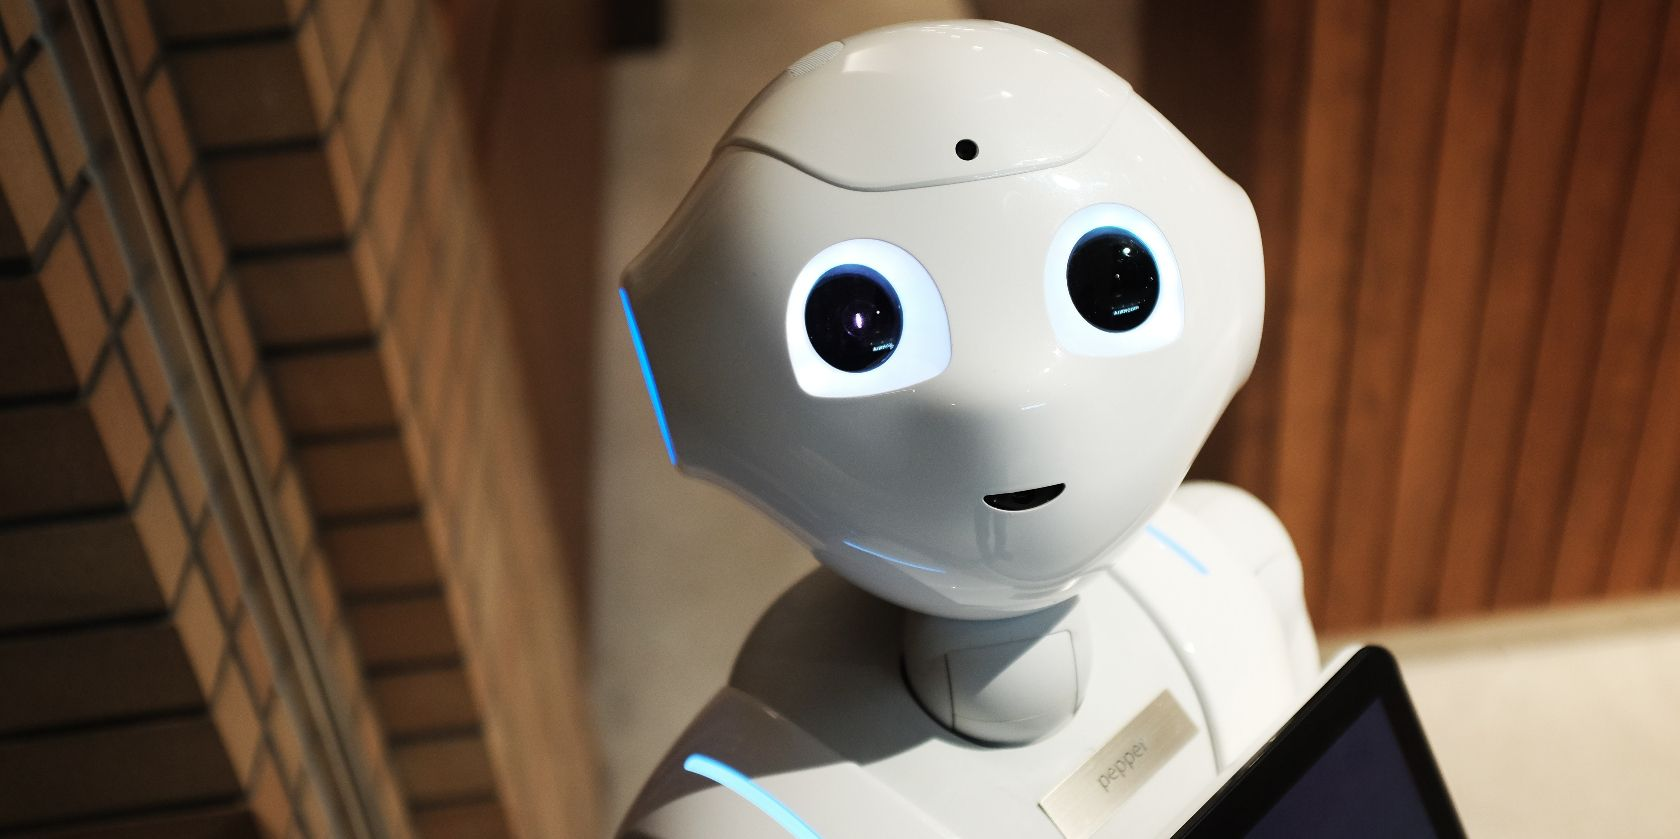 5 Key Facts About AI: How Long Has It Been Around?